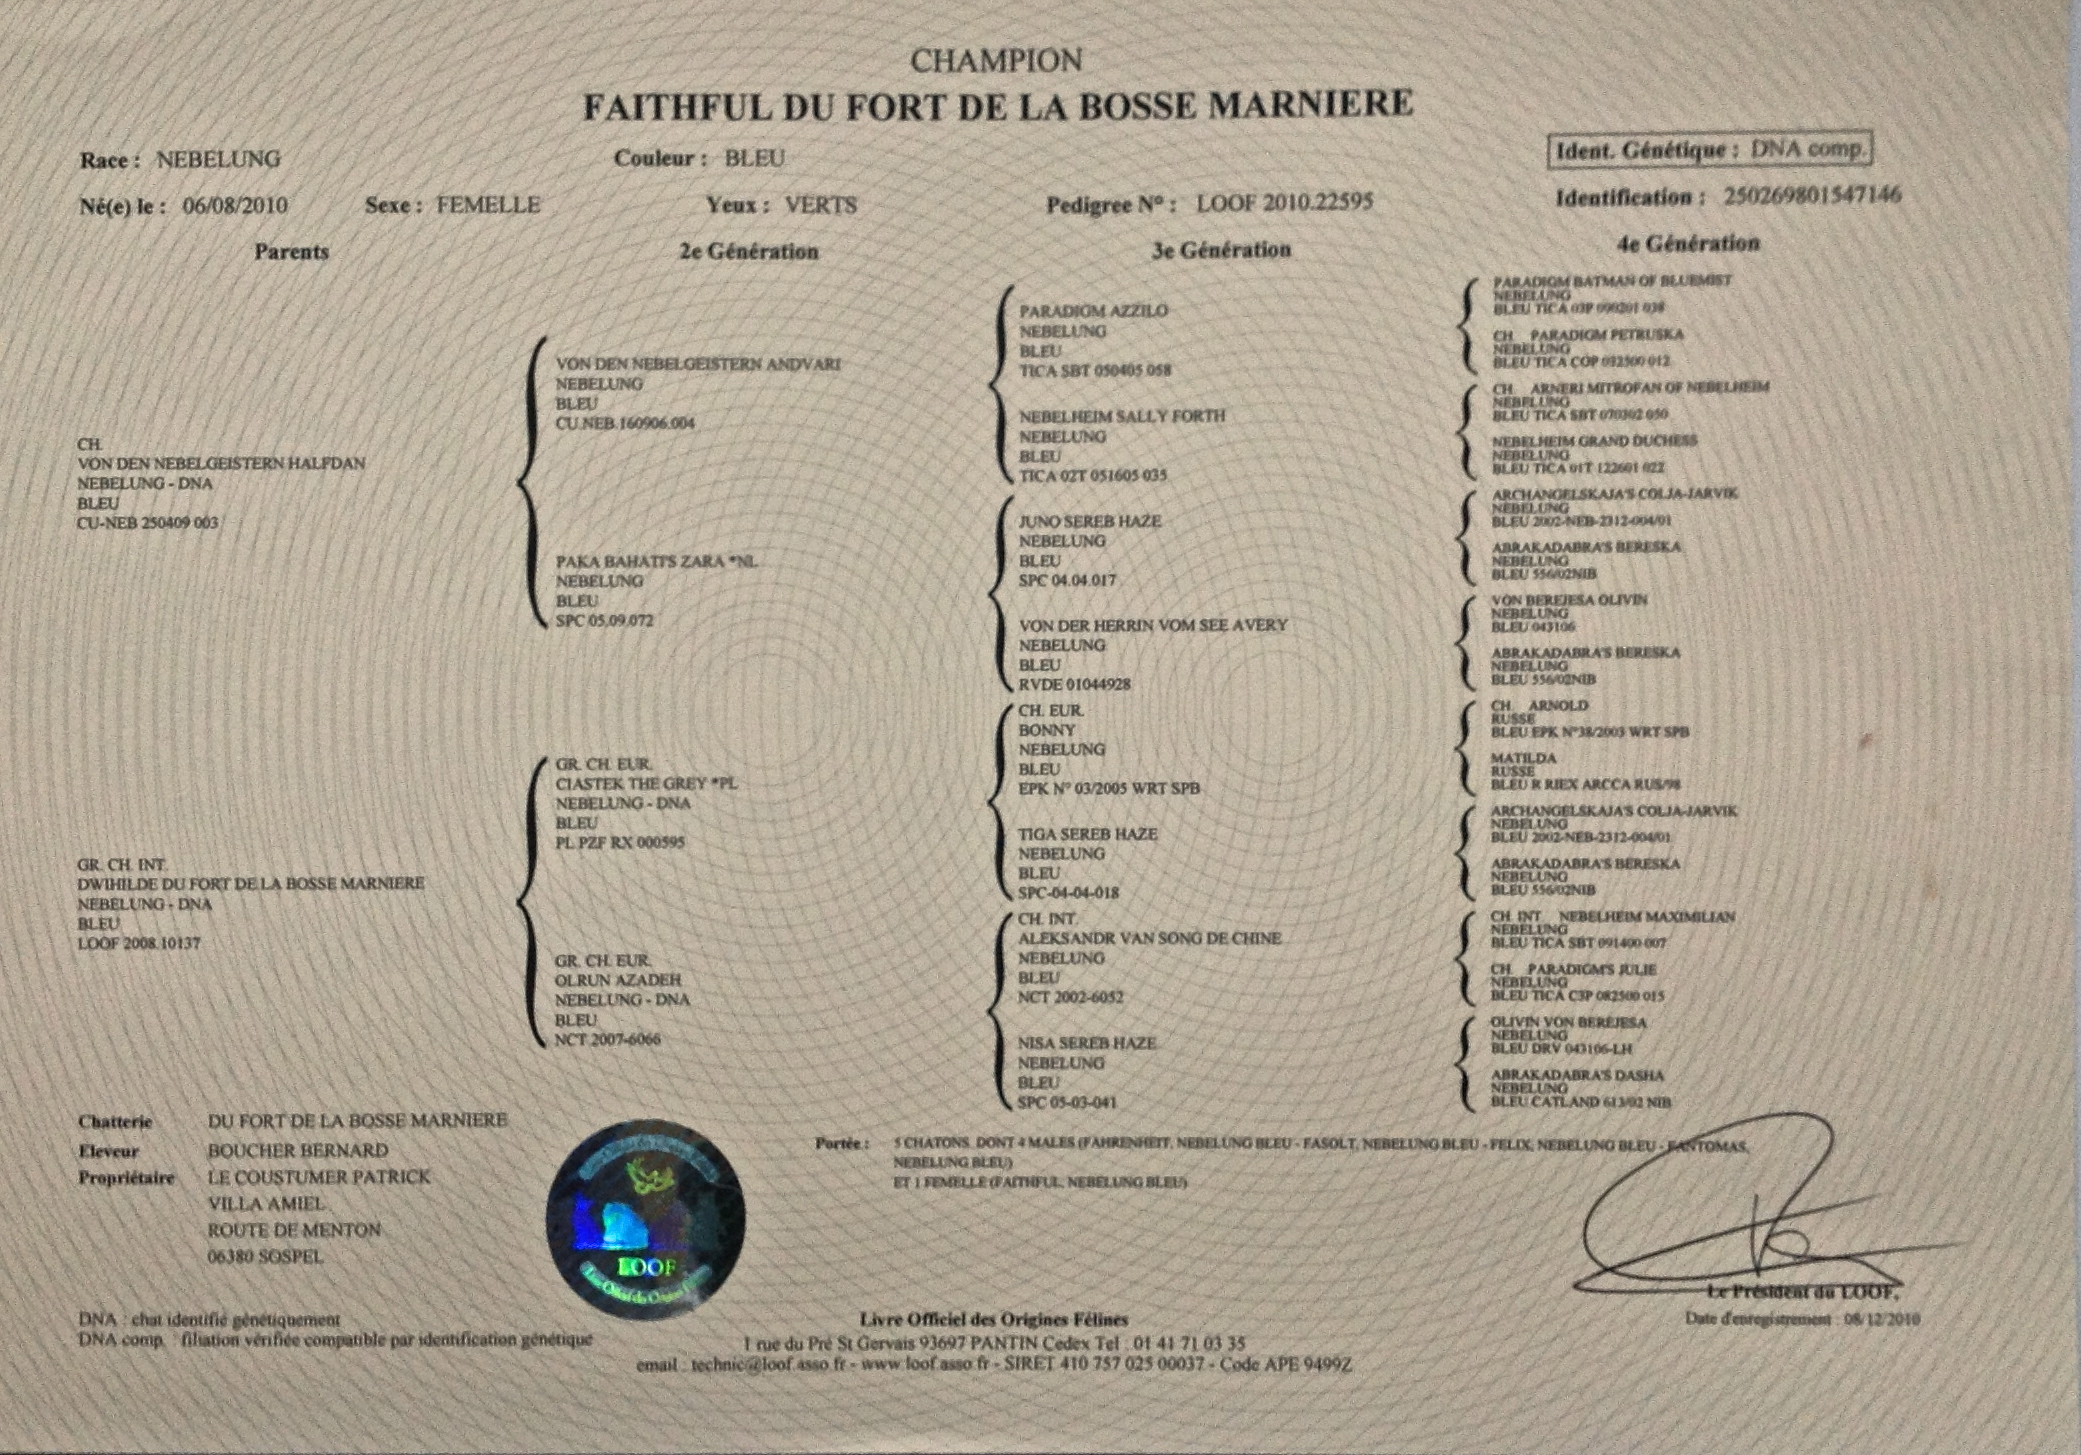 Faithful du Fort De La Bosse Marniere (of Amiel-Goshen) Pedigree LOOF